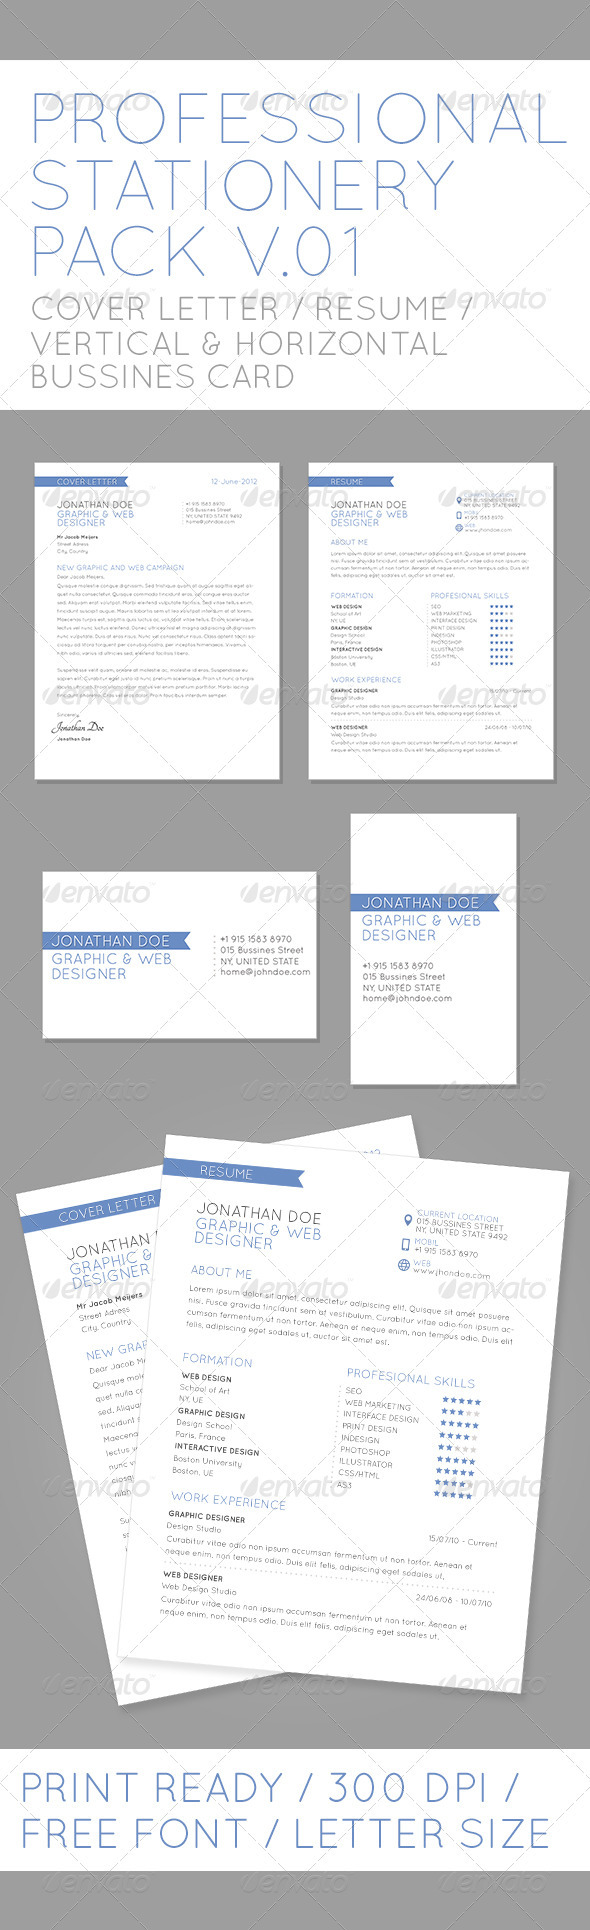 Profesional Stationery Pack V01